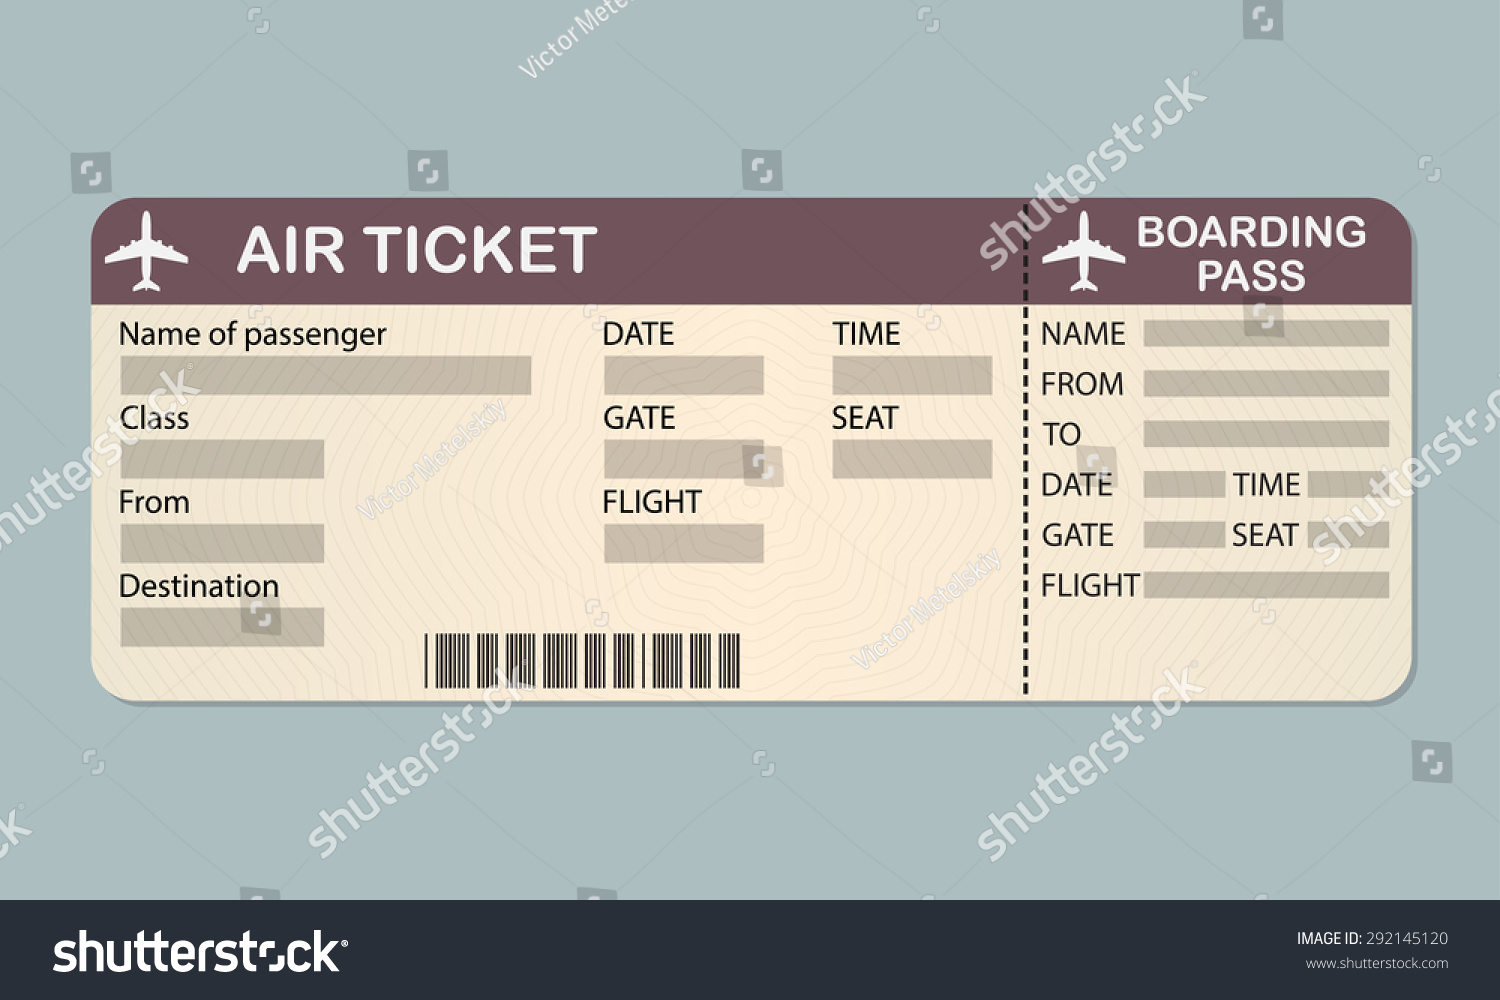 pretend plane ticket template - ticket boarding pass template bing images